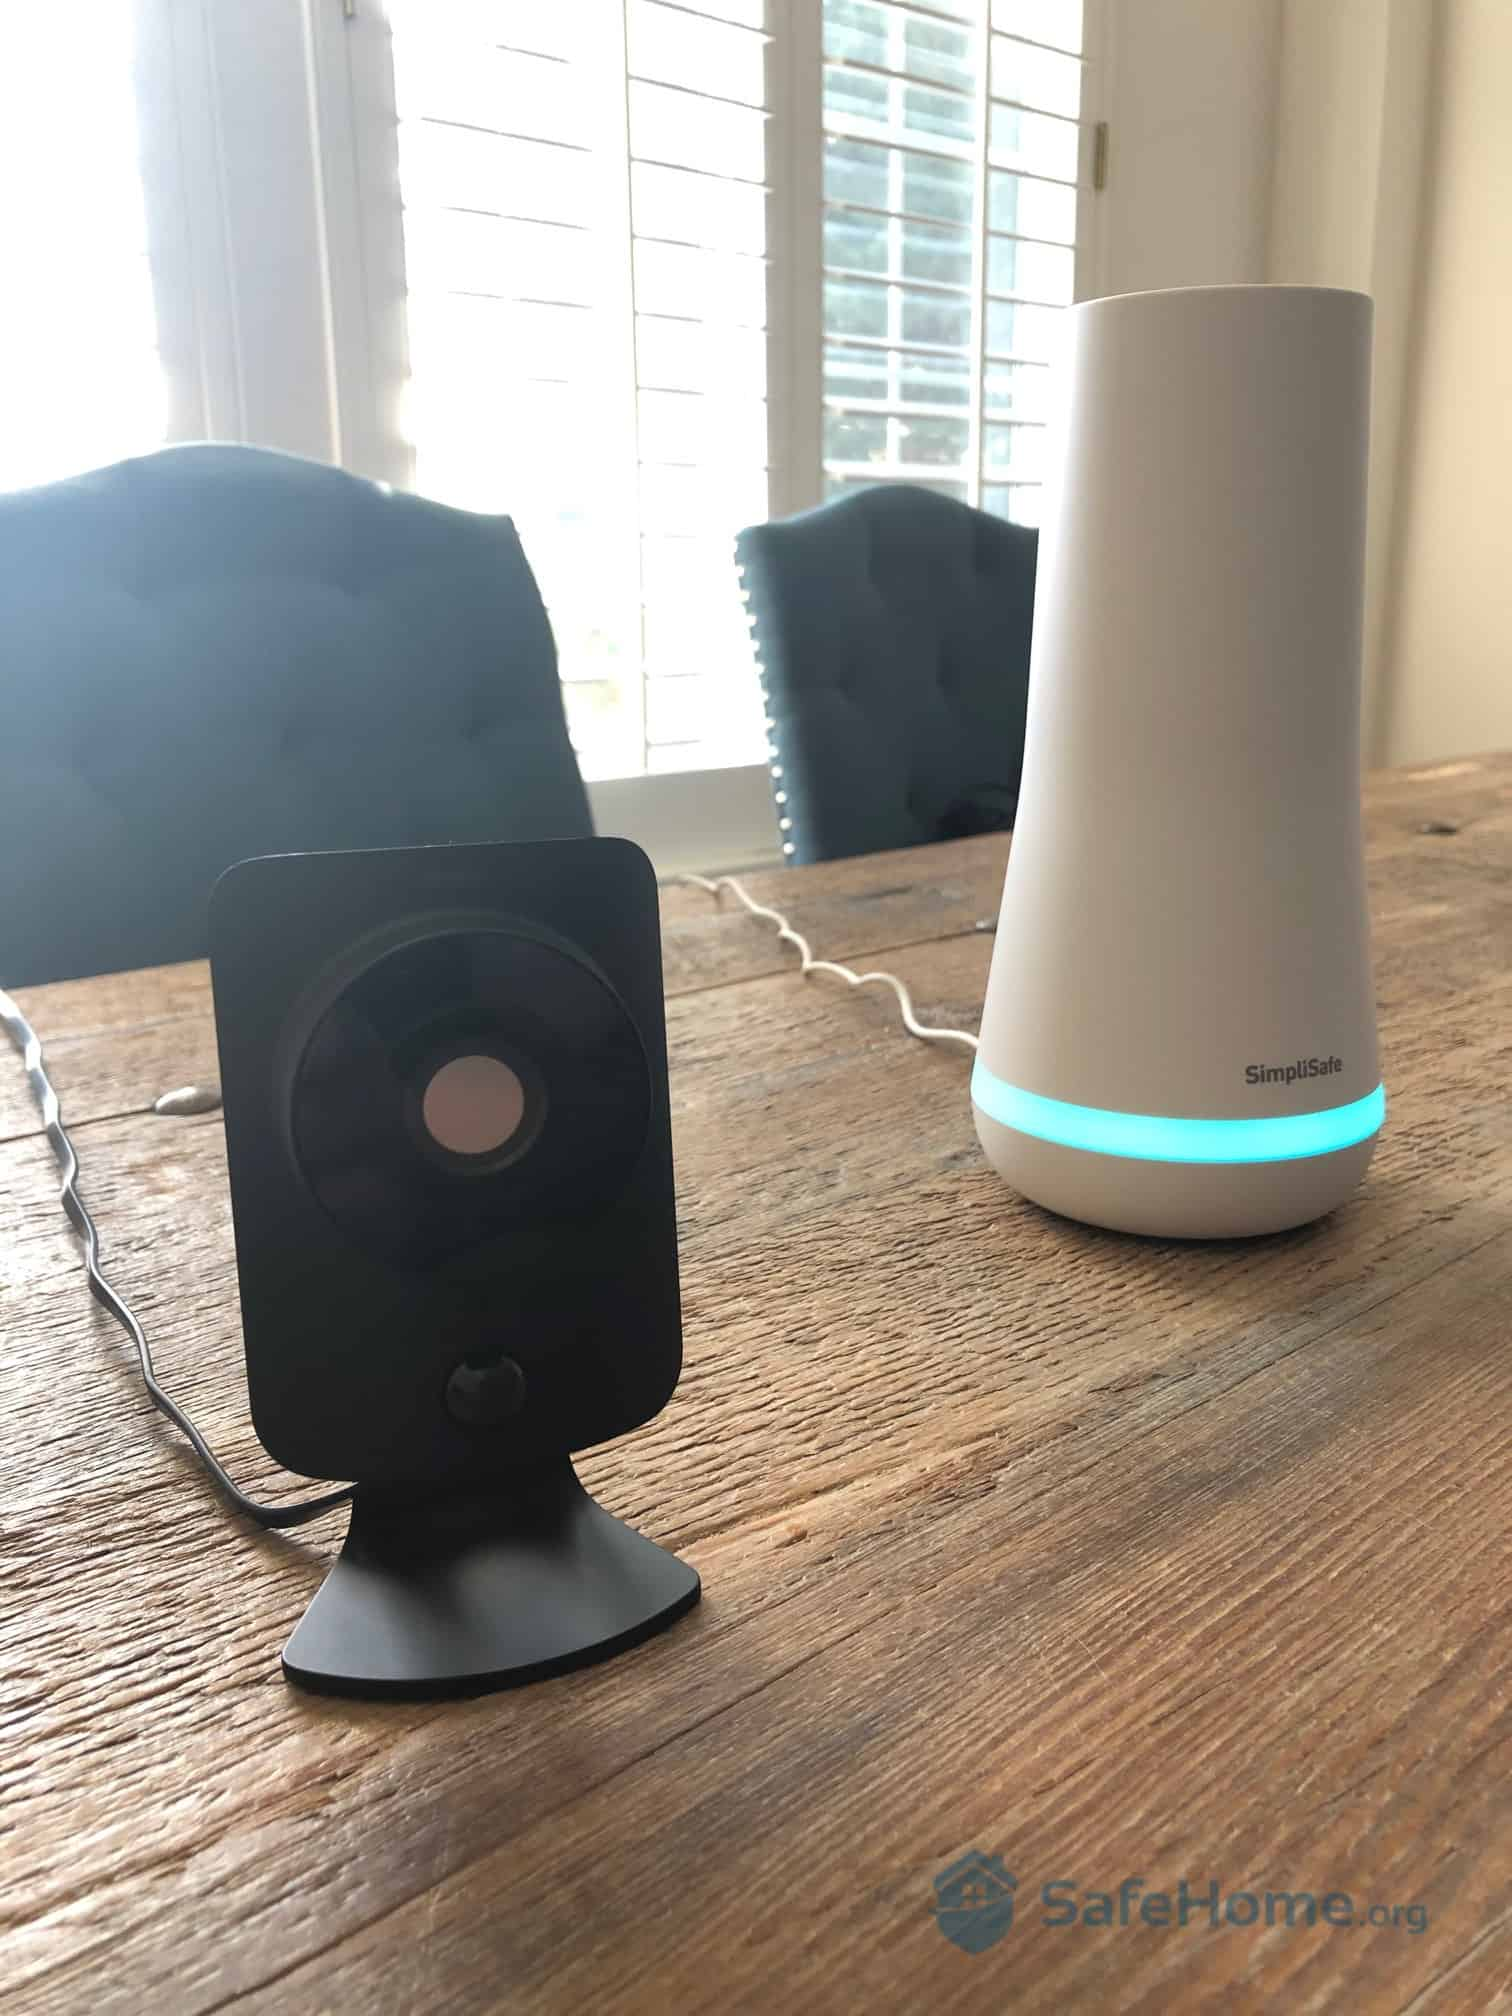 SimpliSafe Camera and Base Station